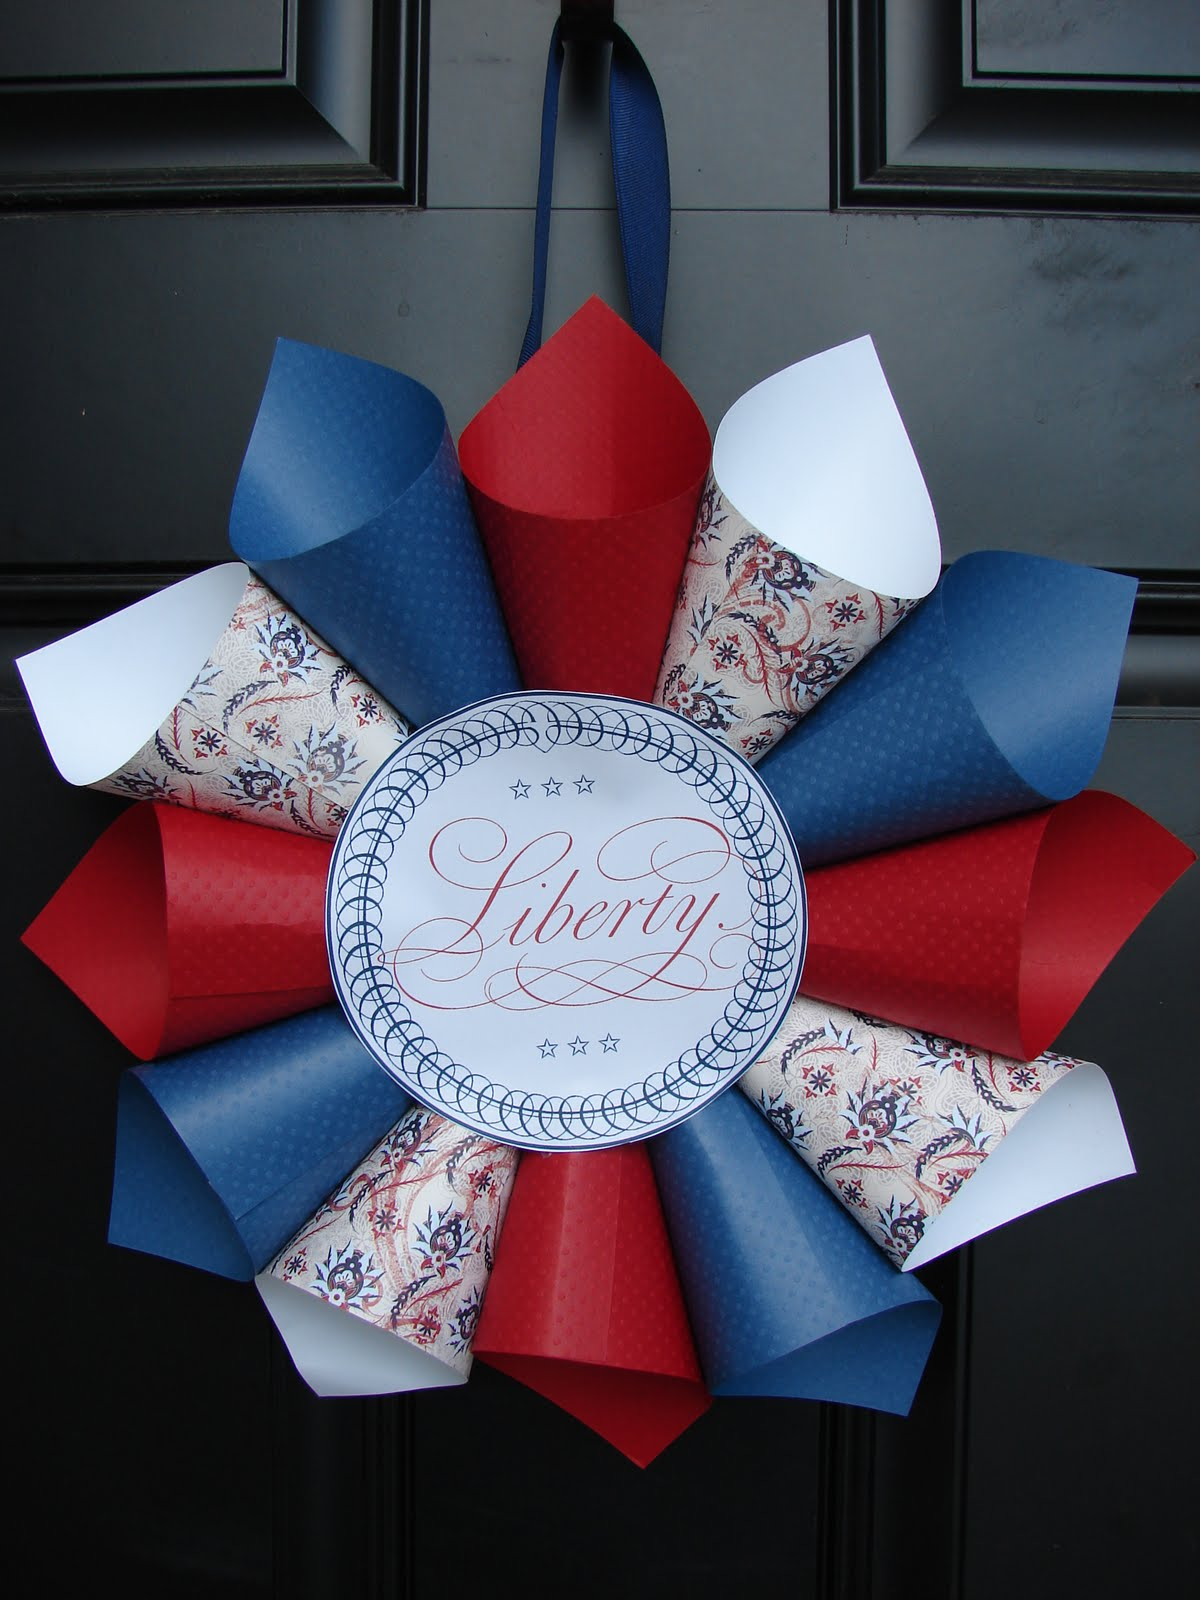 My Blessed Life Fun With 4th Of July Crafts Part 3